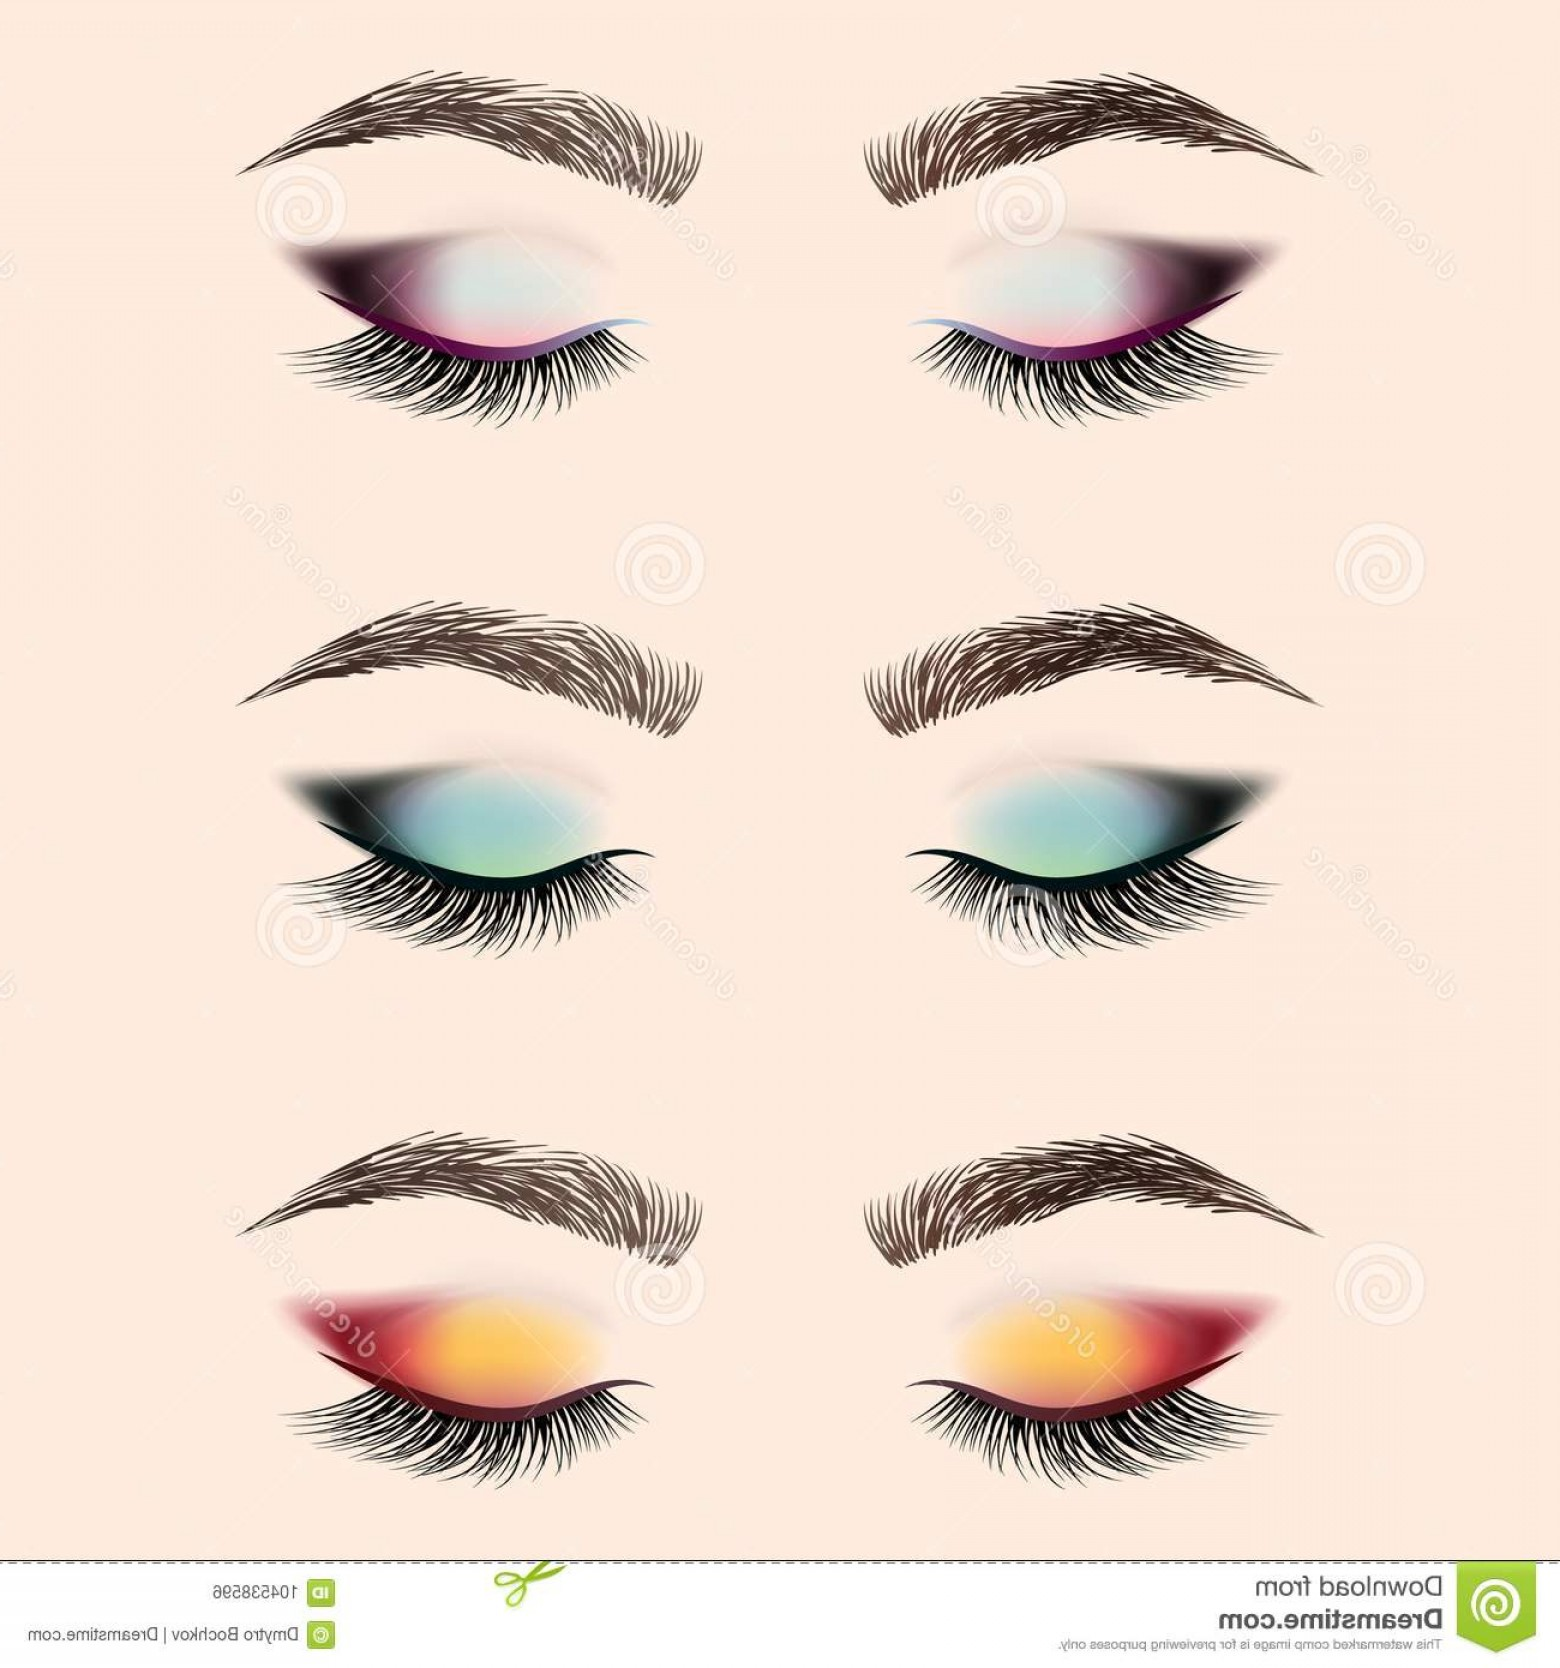 Vector Illustration Eyes Makeup: Set Eye Makeup Closed Eye Long Eyelashes Eyebrows Set Eye Makeup Closed Eye Long Eyelashes Eyebrows Vector Image